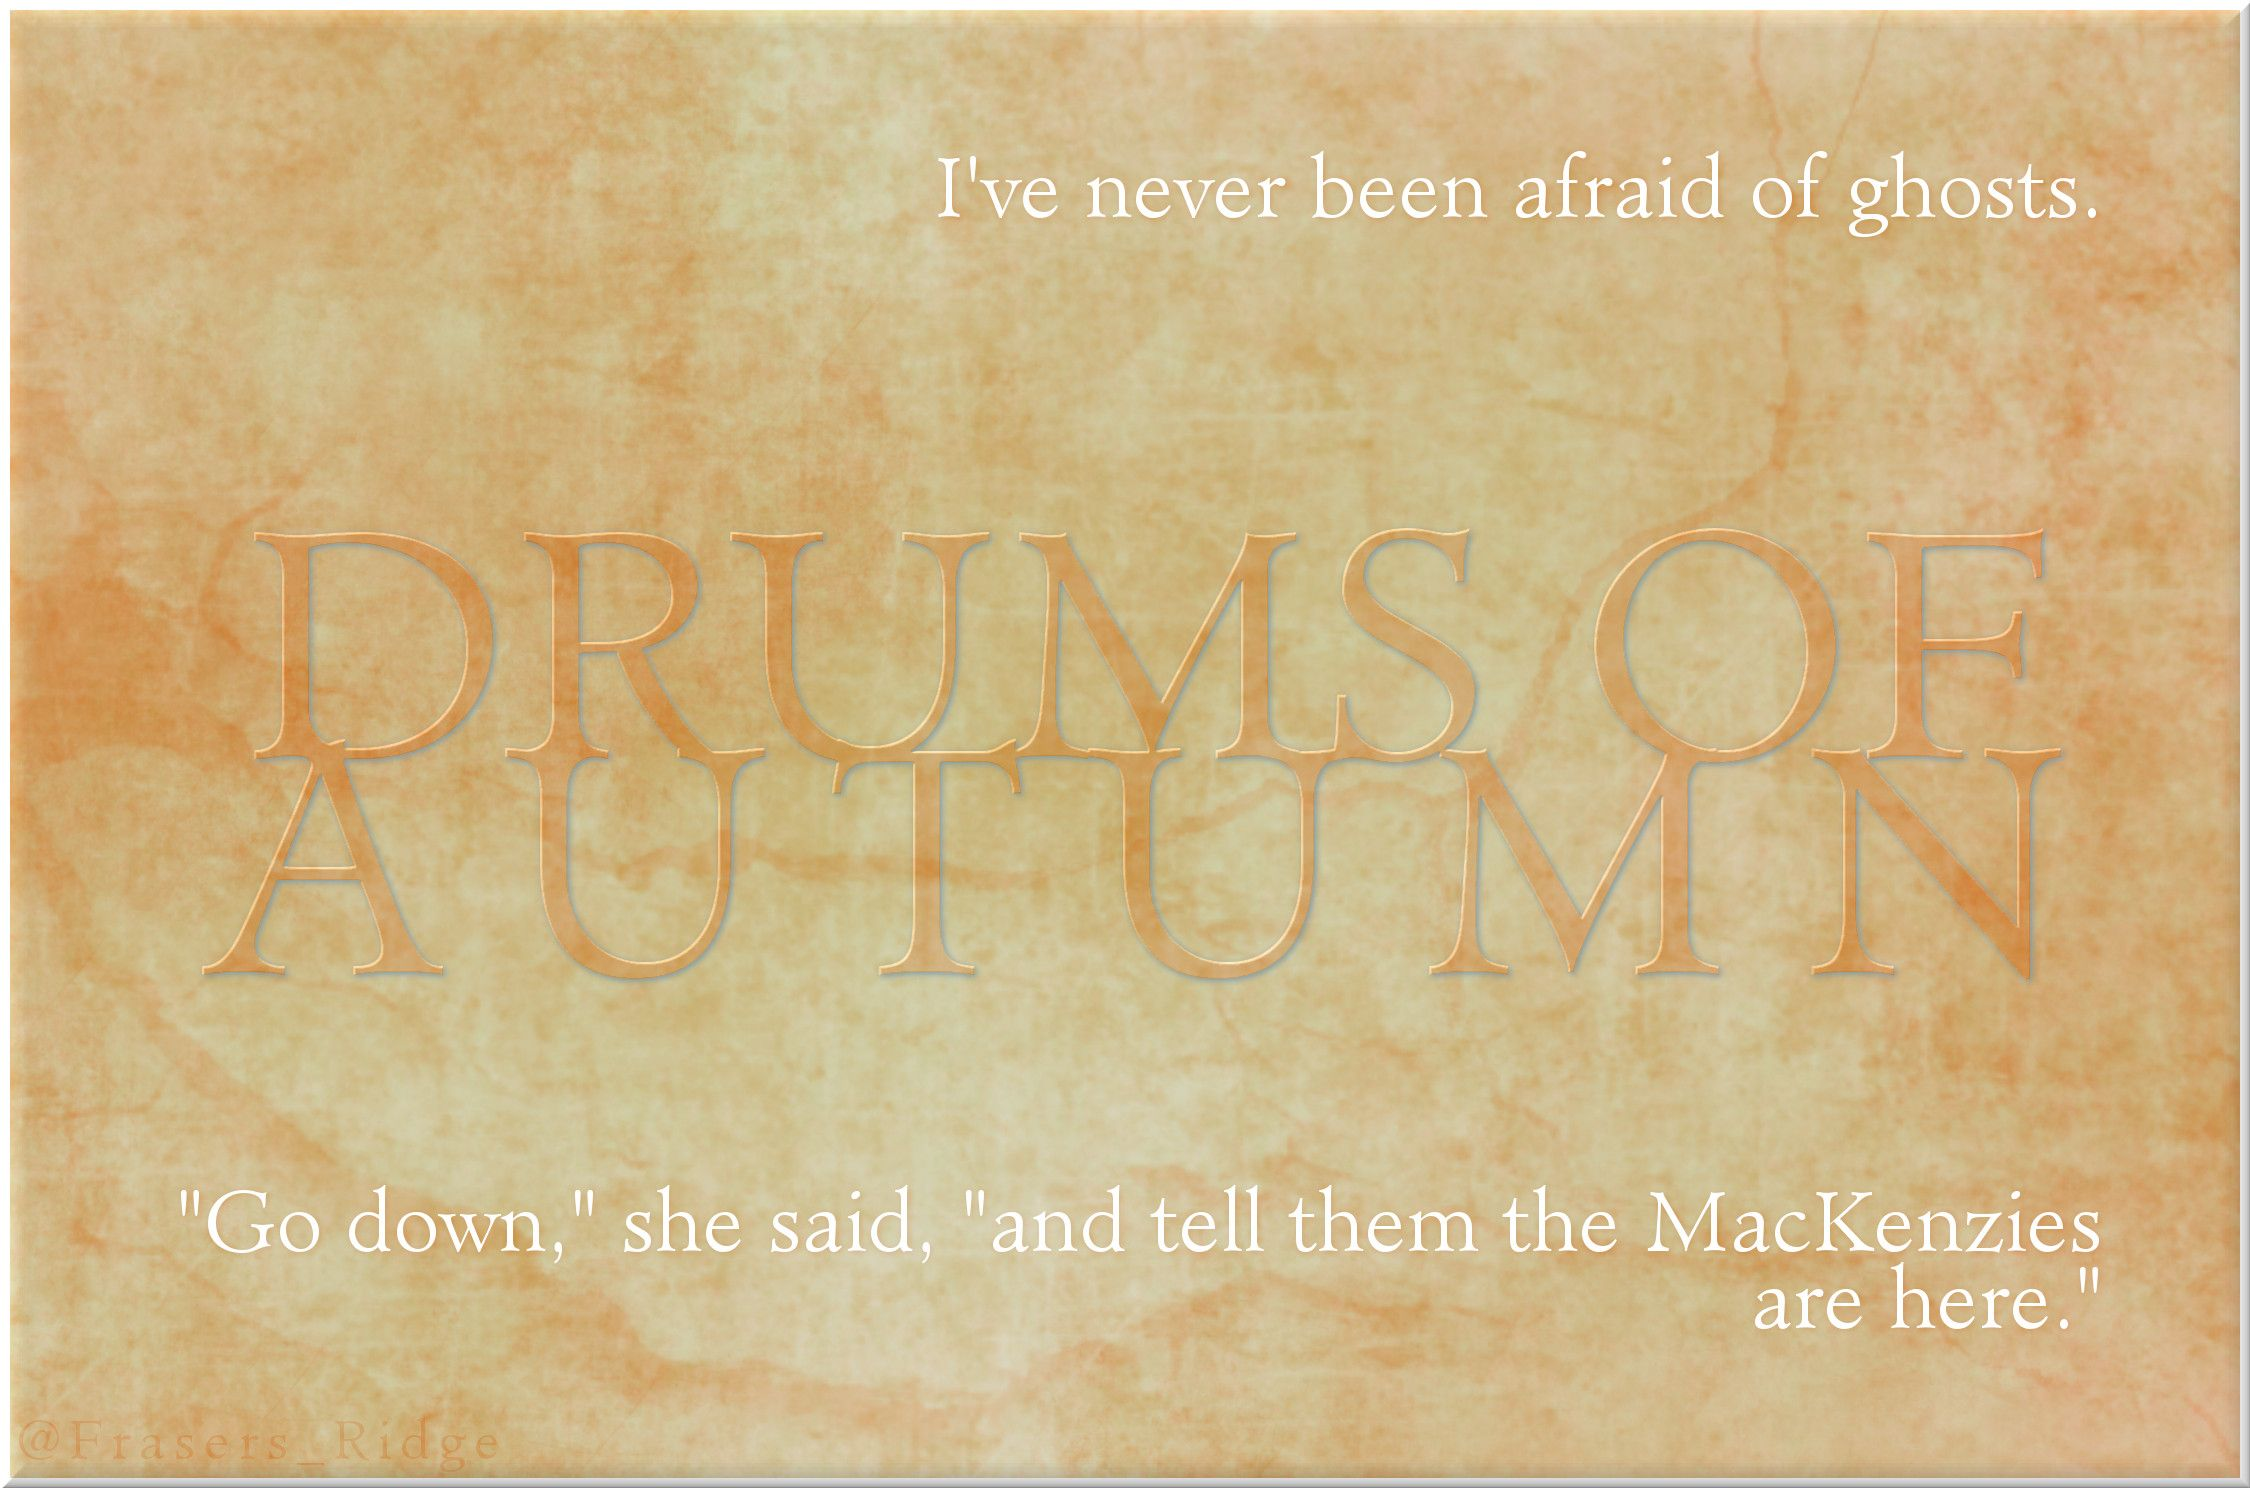 Drums of Autumn first & last sentence